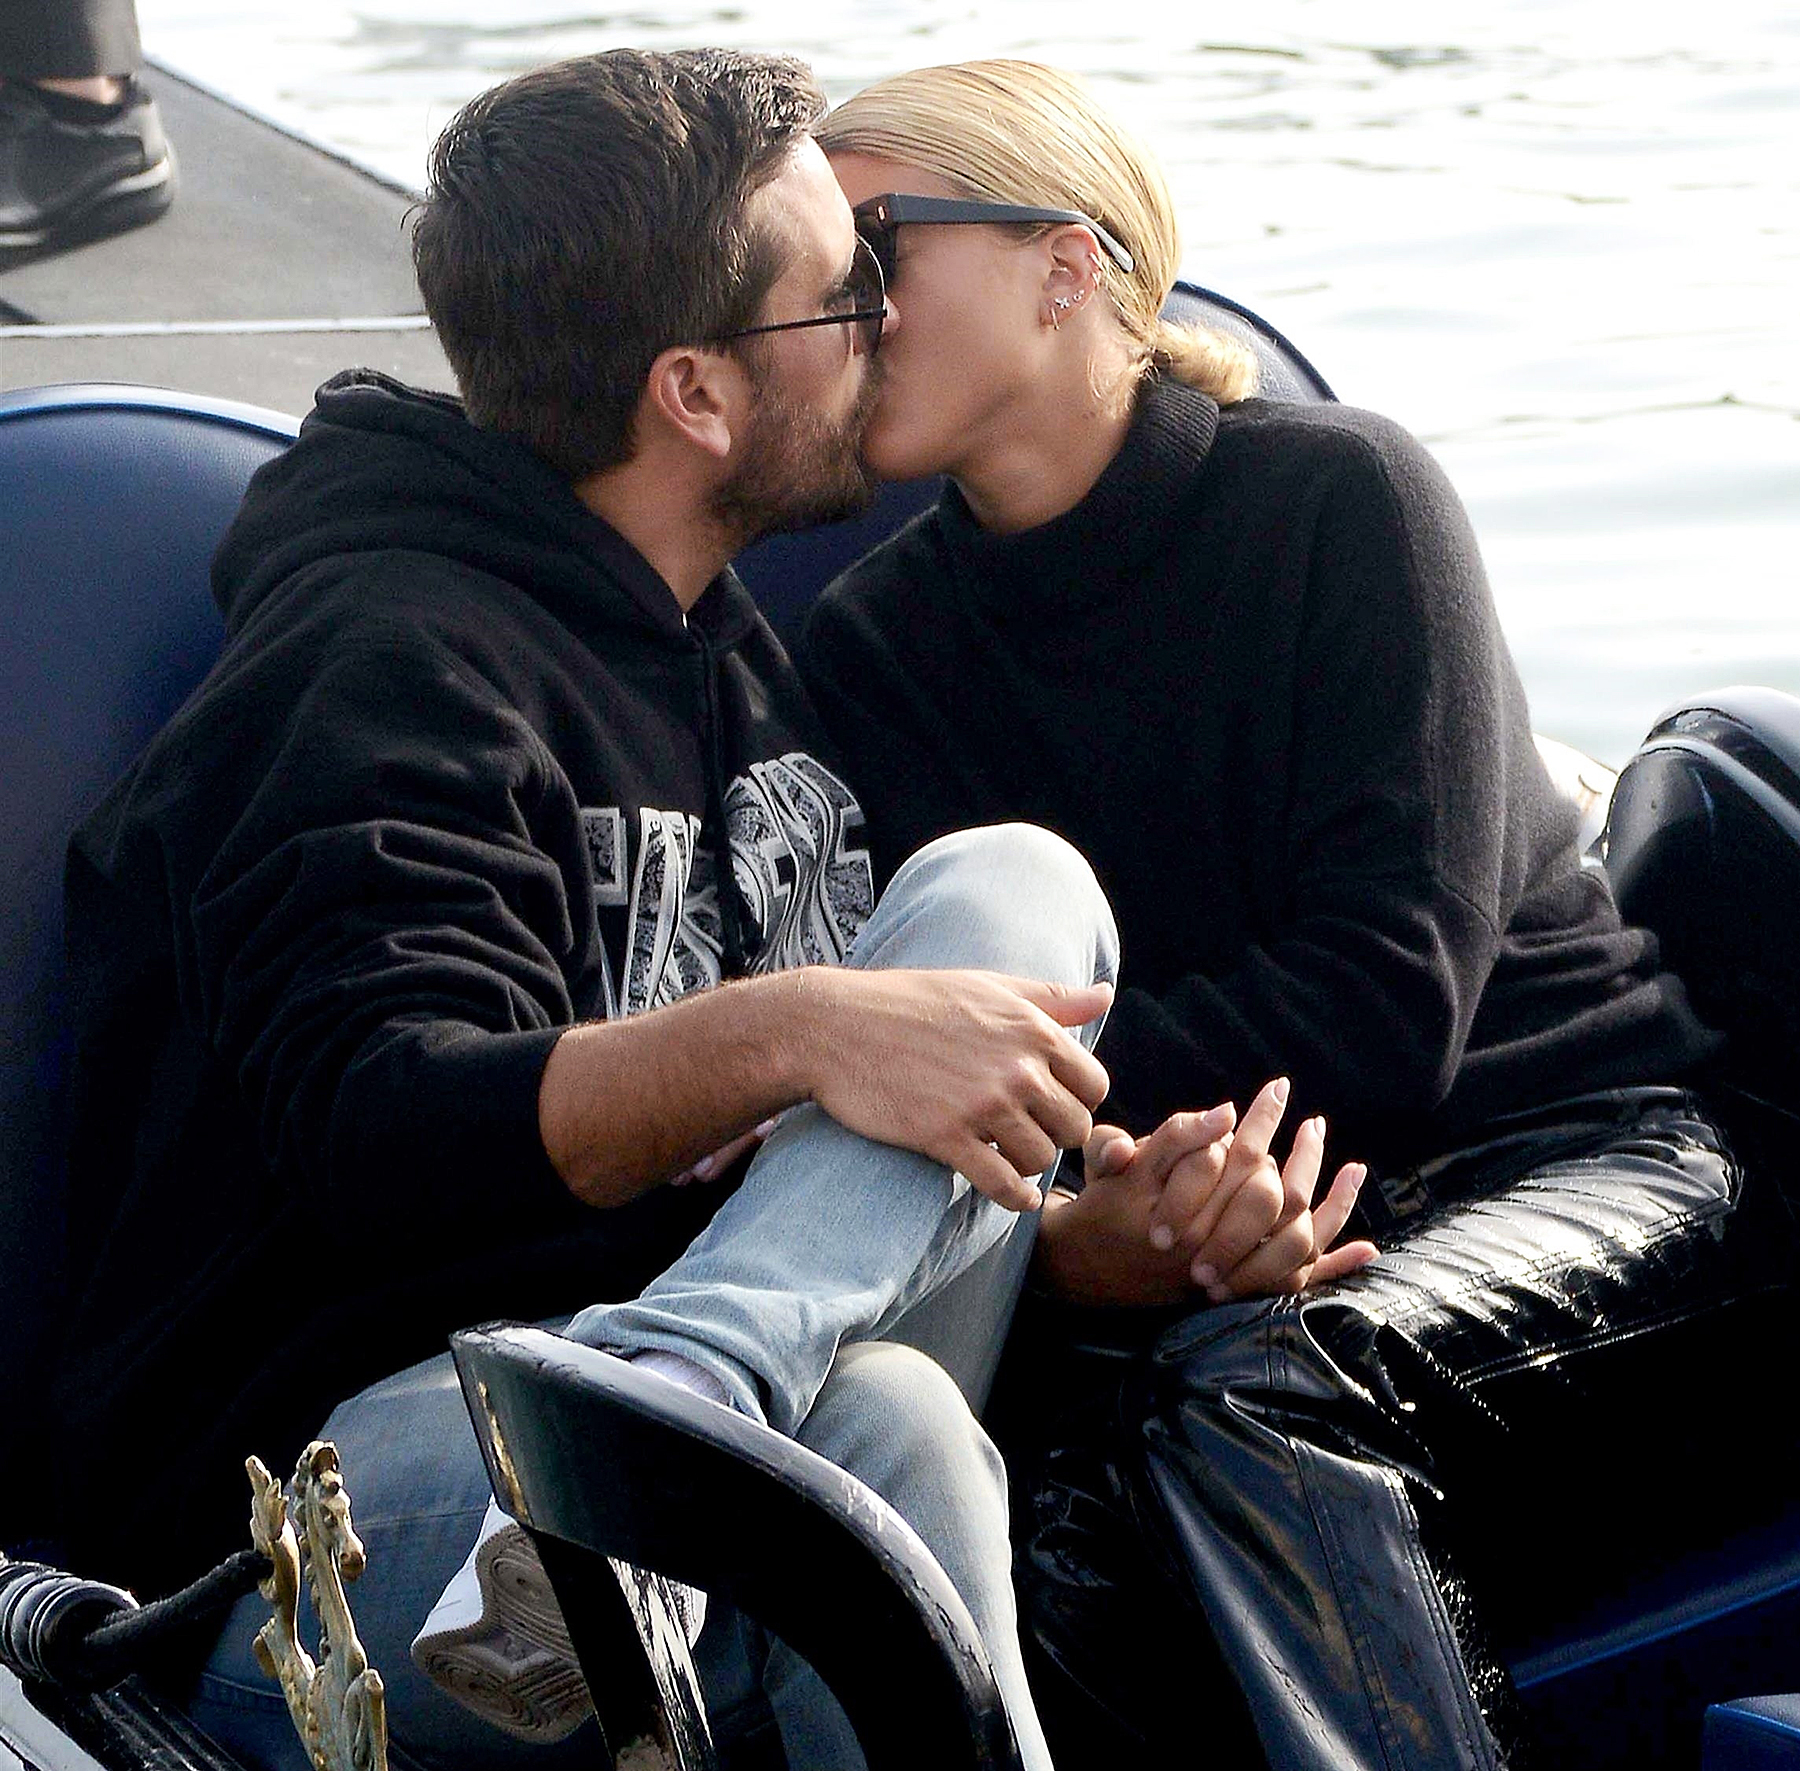 Scott Disick Sofia Richie kissing Venice